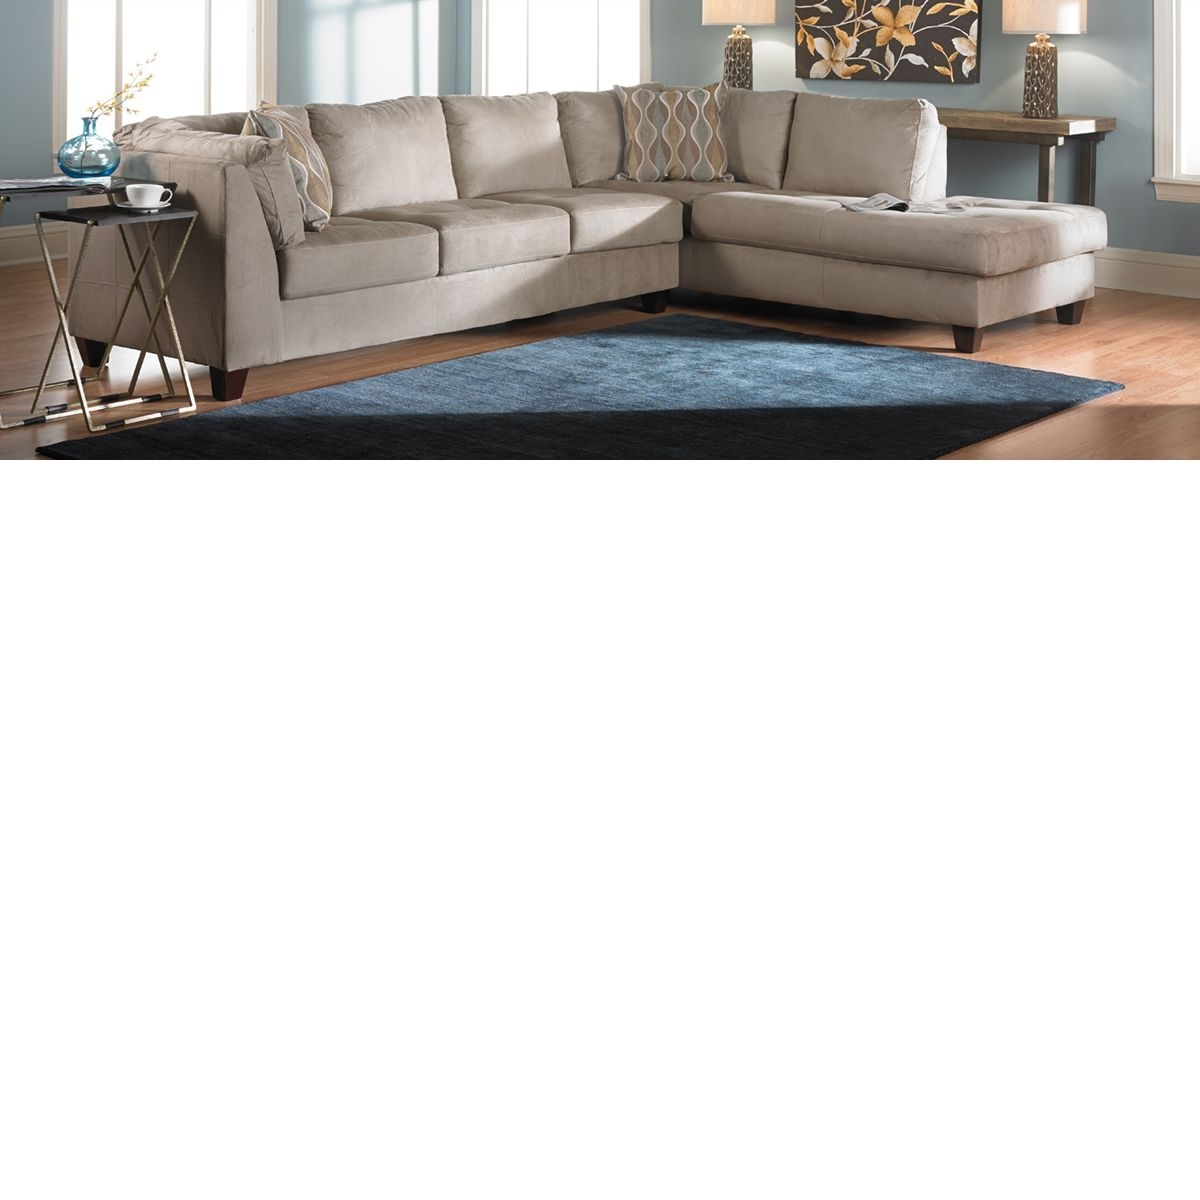 Virginia Beach Sectional Sofas pertaining to Most Recent Stunning The Dump Furniture Sectional Sofa For Home Pic Haynes